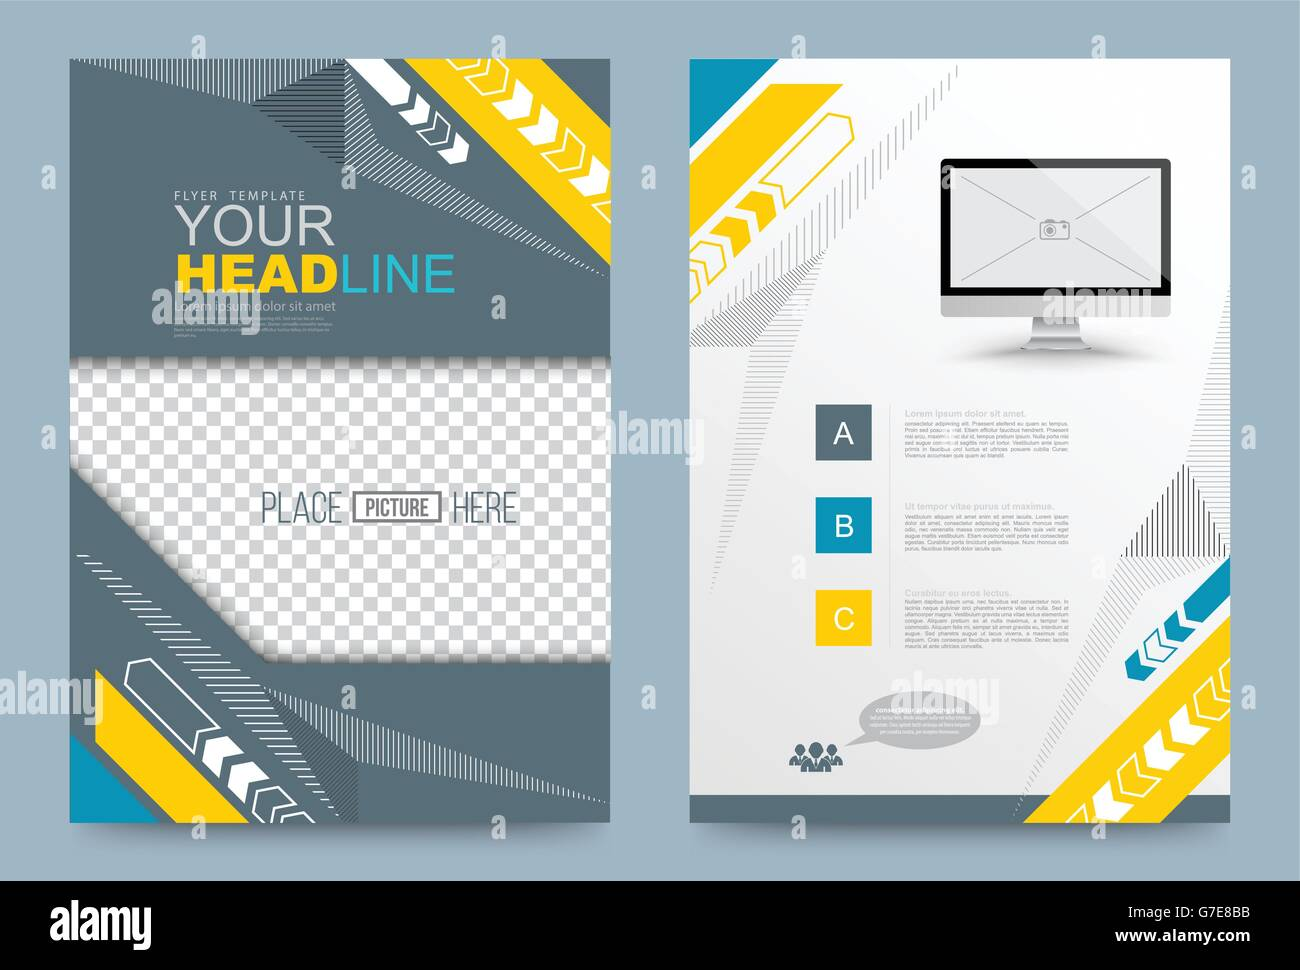 cover template design for business annual report flyer brochure leaflet presentation and printing press vector illustration la